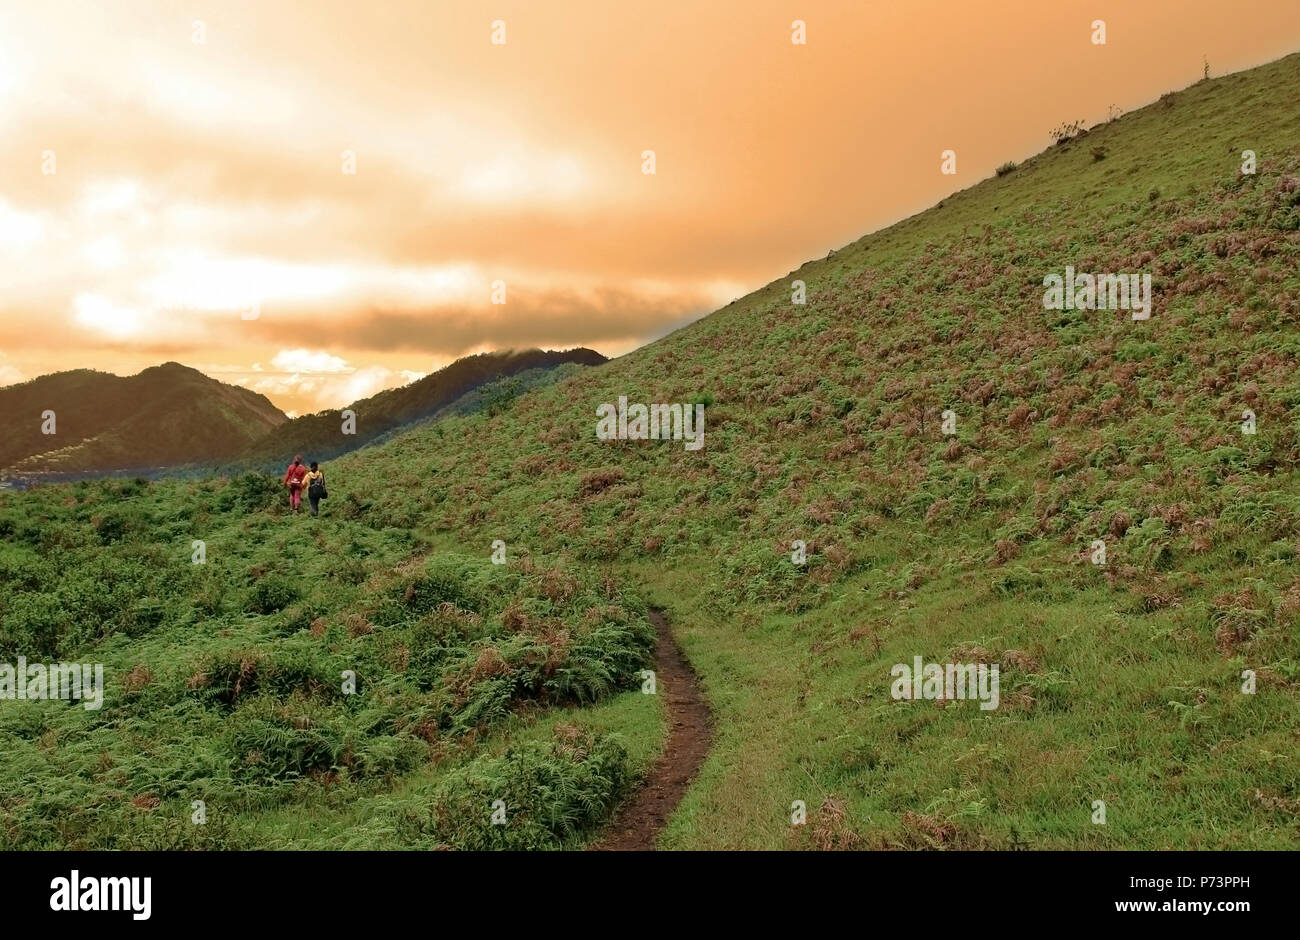 Afternoon Scenery At The Mountain, Mountain Afternoon Hiking - Stock Image